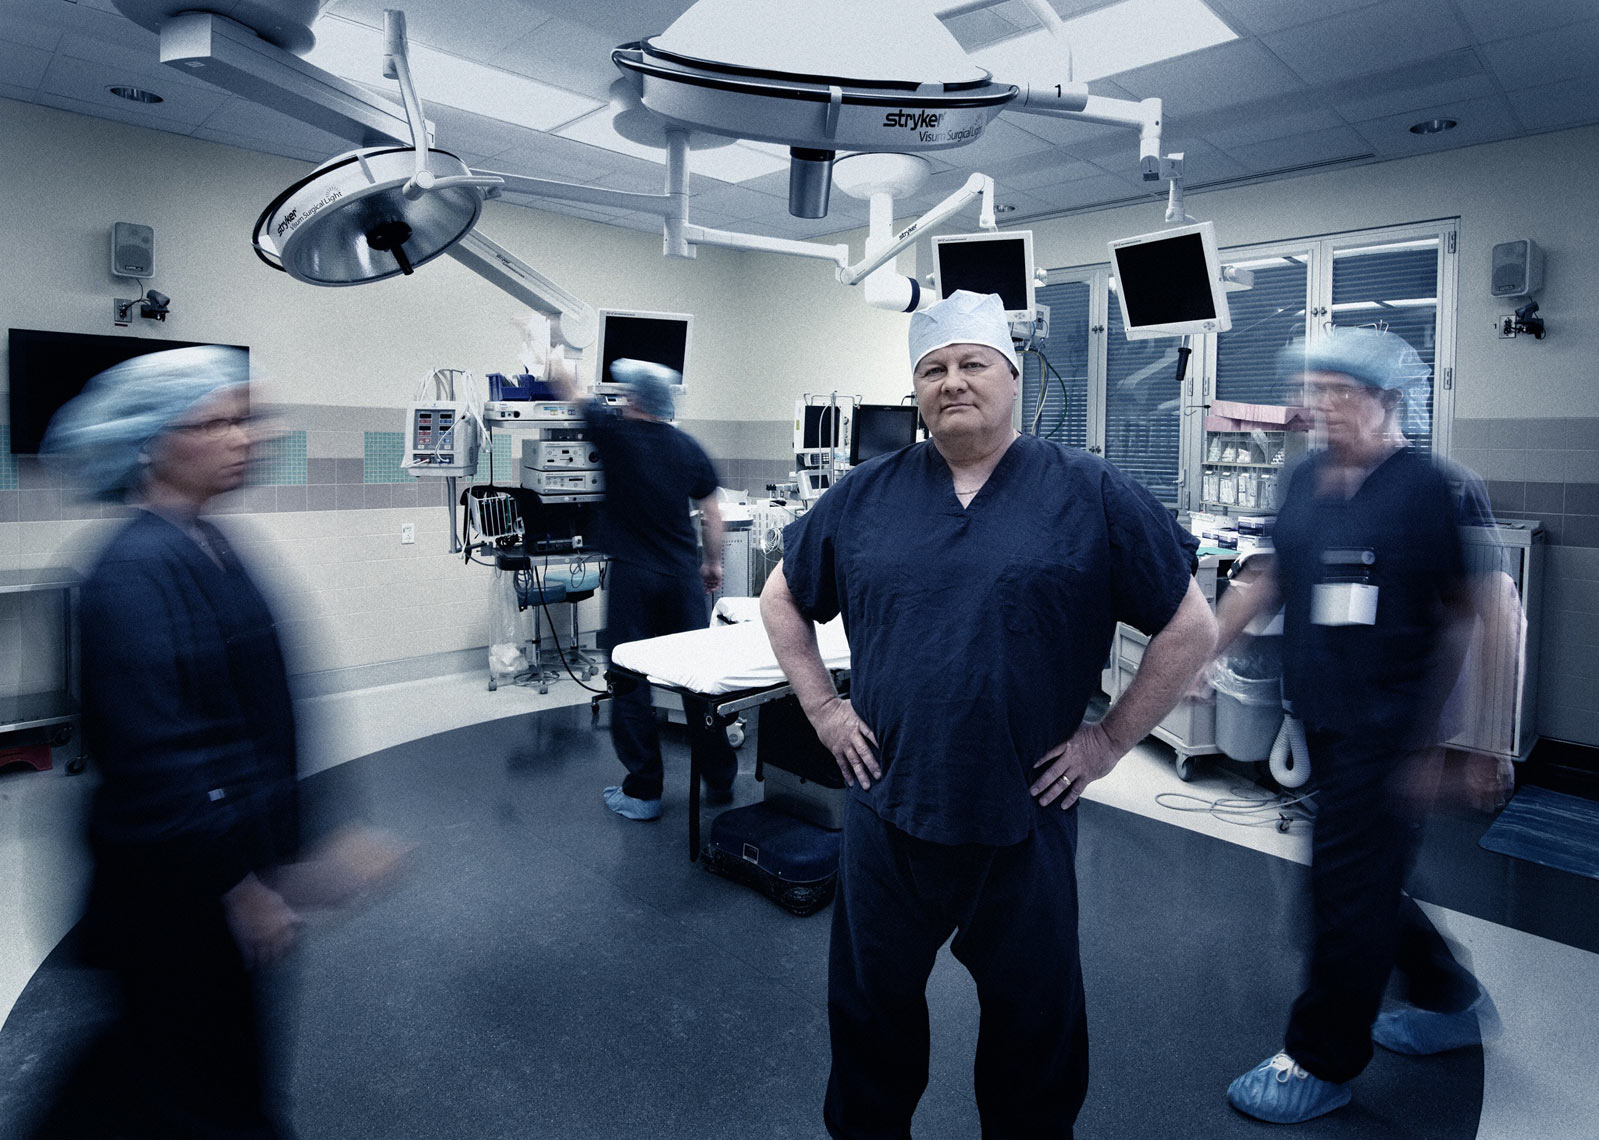 Tria/operating room/medical staff/lifestyle photo